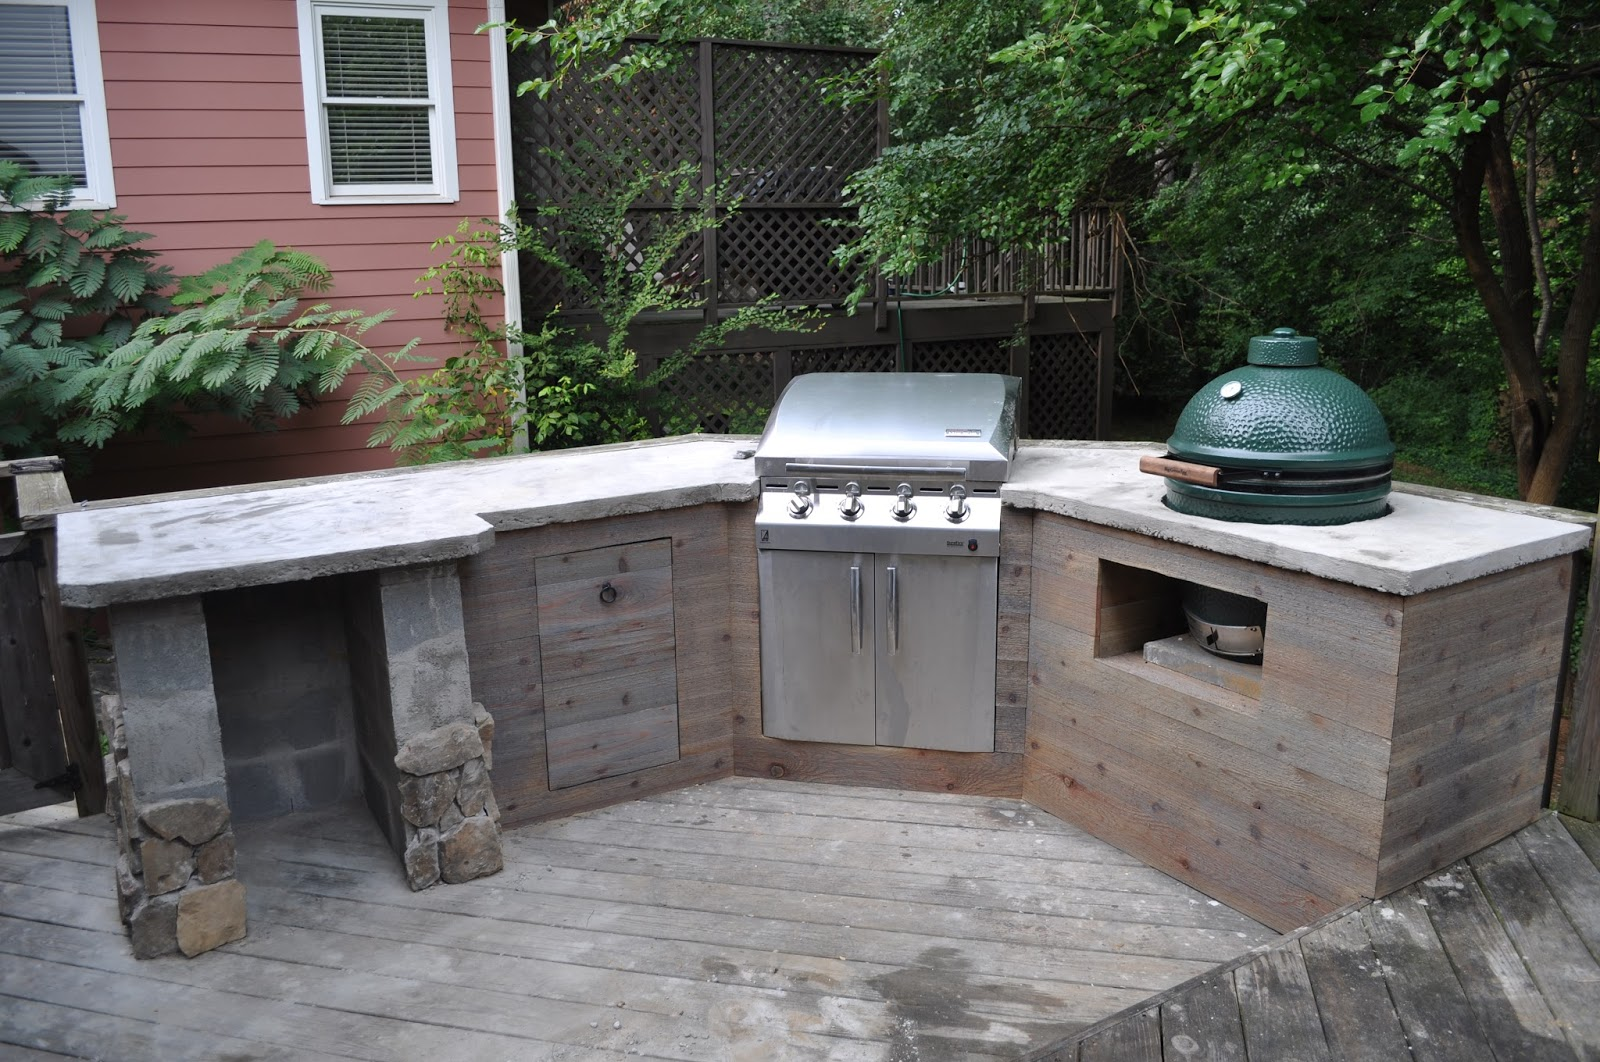 The cow spot outdoor kitchen part 2 - Designing barbecue spot outdoor sanctuary ...